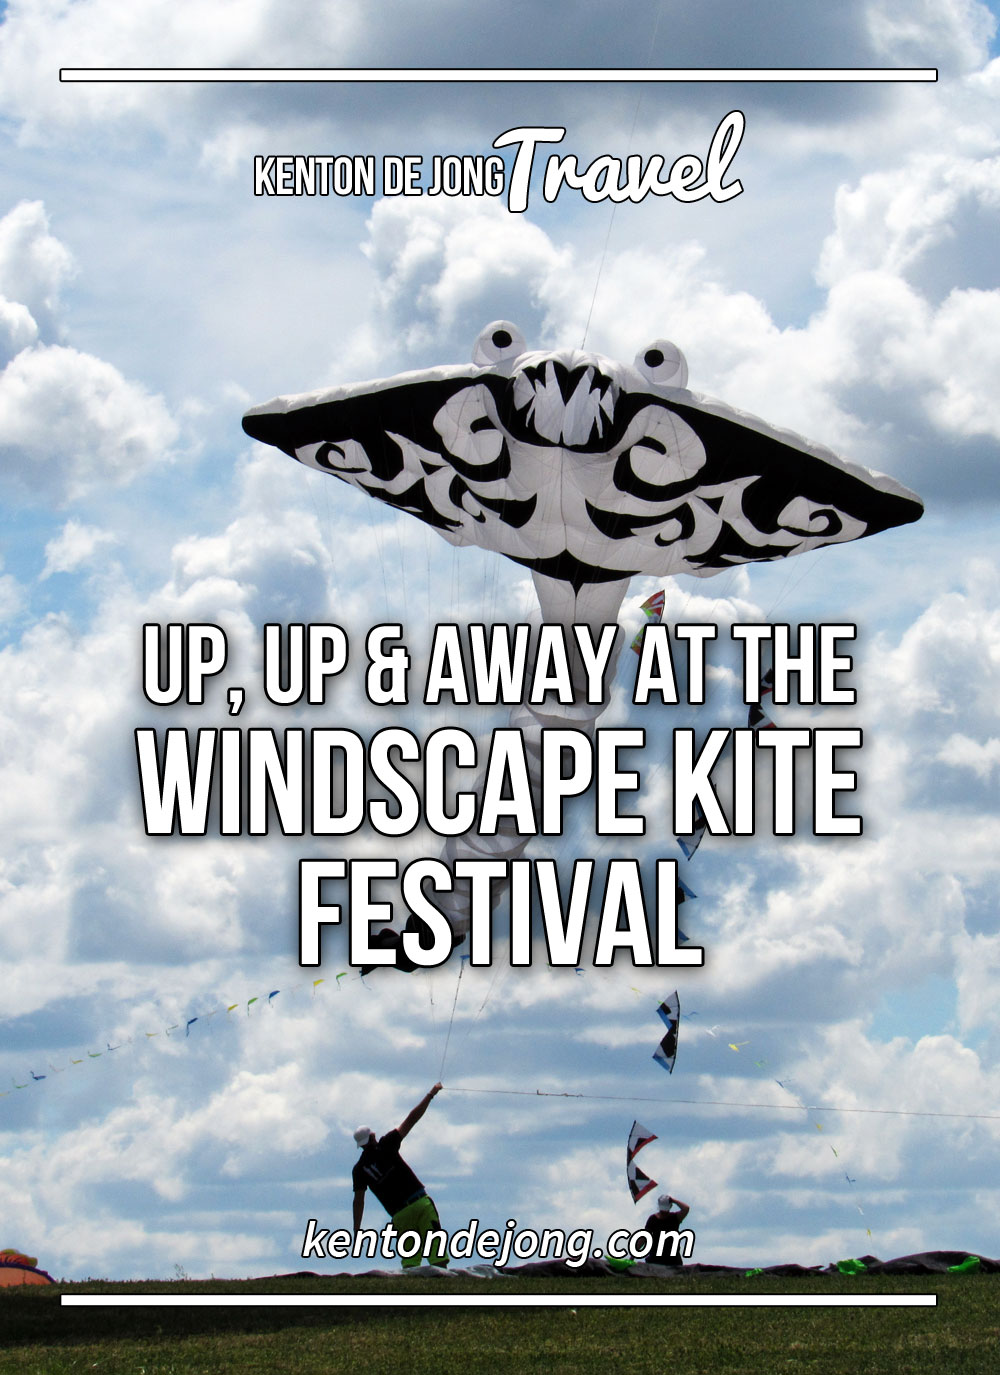 Up, Up & Away at the Windscape Kite Festival